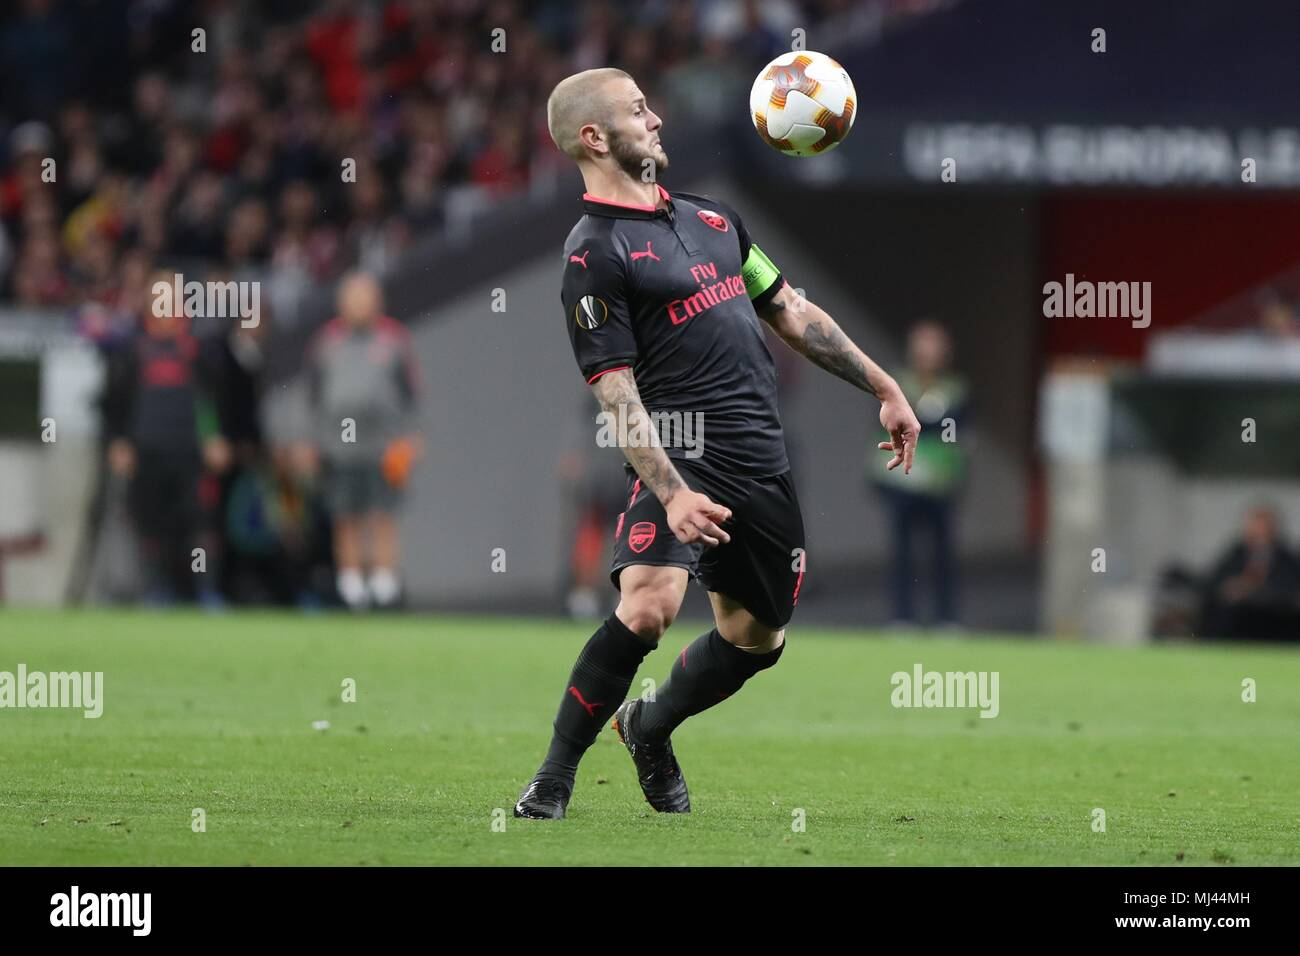 Madrid, Spain . 3rd May 2018. Jack Wilshere (FC Arsenal)  during the UEFA Champions League, semi final, 2nd leg football match between Real Madrid and Bayern Munich on May 1, 2018 at Santiago Bernabeu stadium in Madrid, Spain - Photo Laurent Lairys / DPPI Credit: Laurent Lairys/Agence Locevaphotos/Alamy Live News - Stock Image